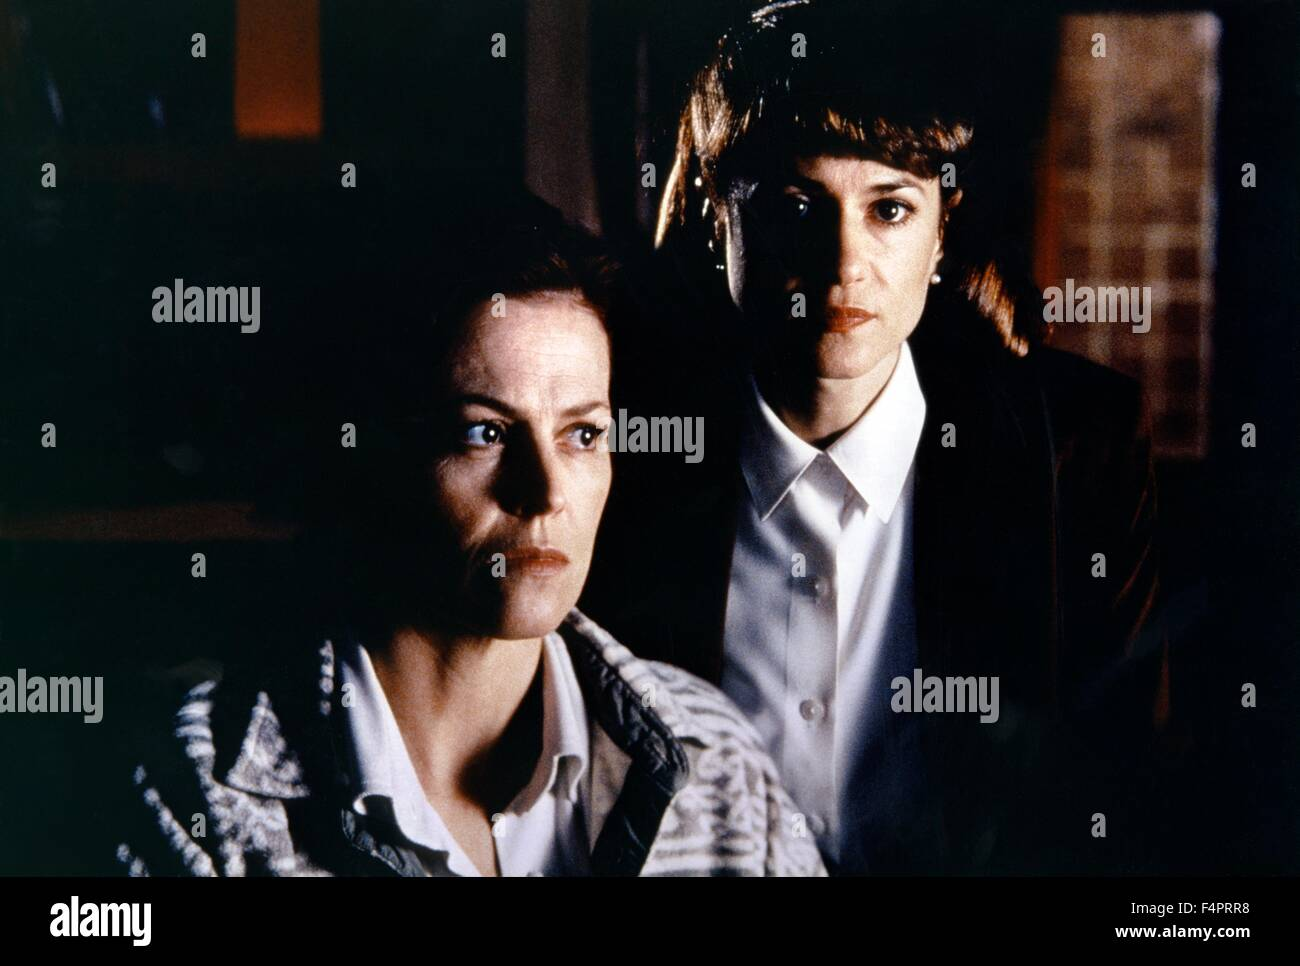 Sigourney Weaver and Holly Hunter / Copycat / 1995 directed by Jon Amiel [Warner Bros. Pictures] - Stock Image